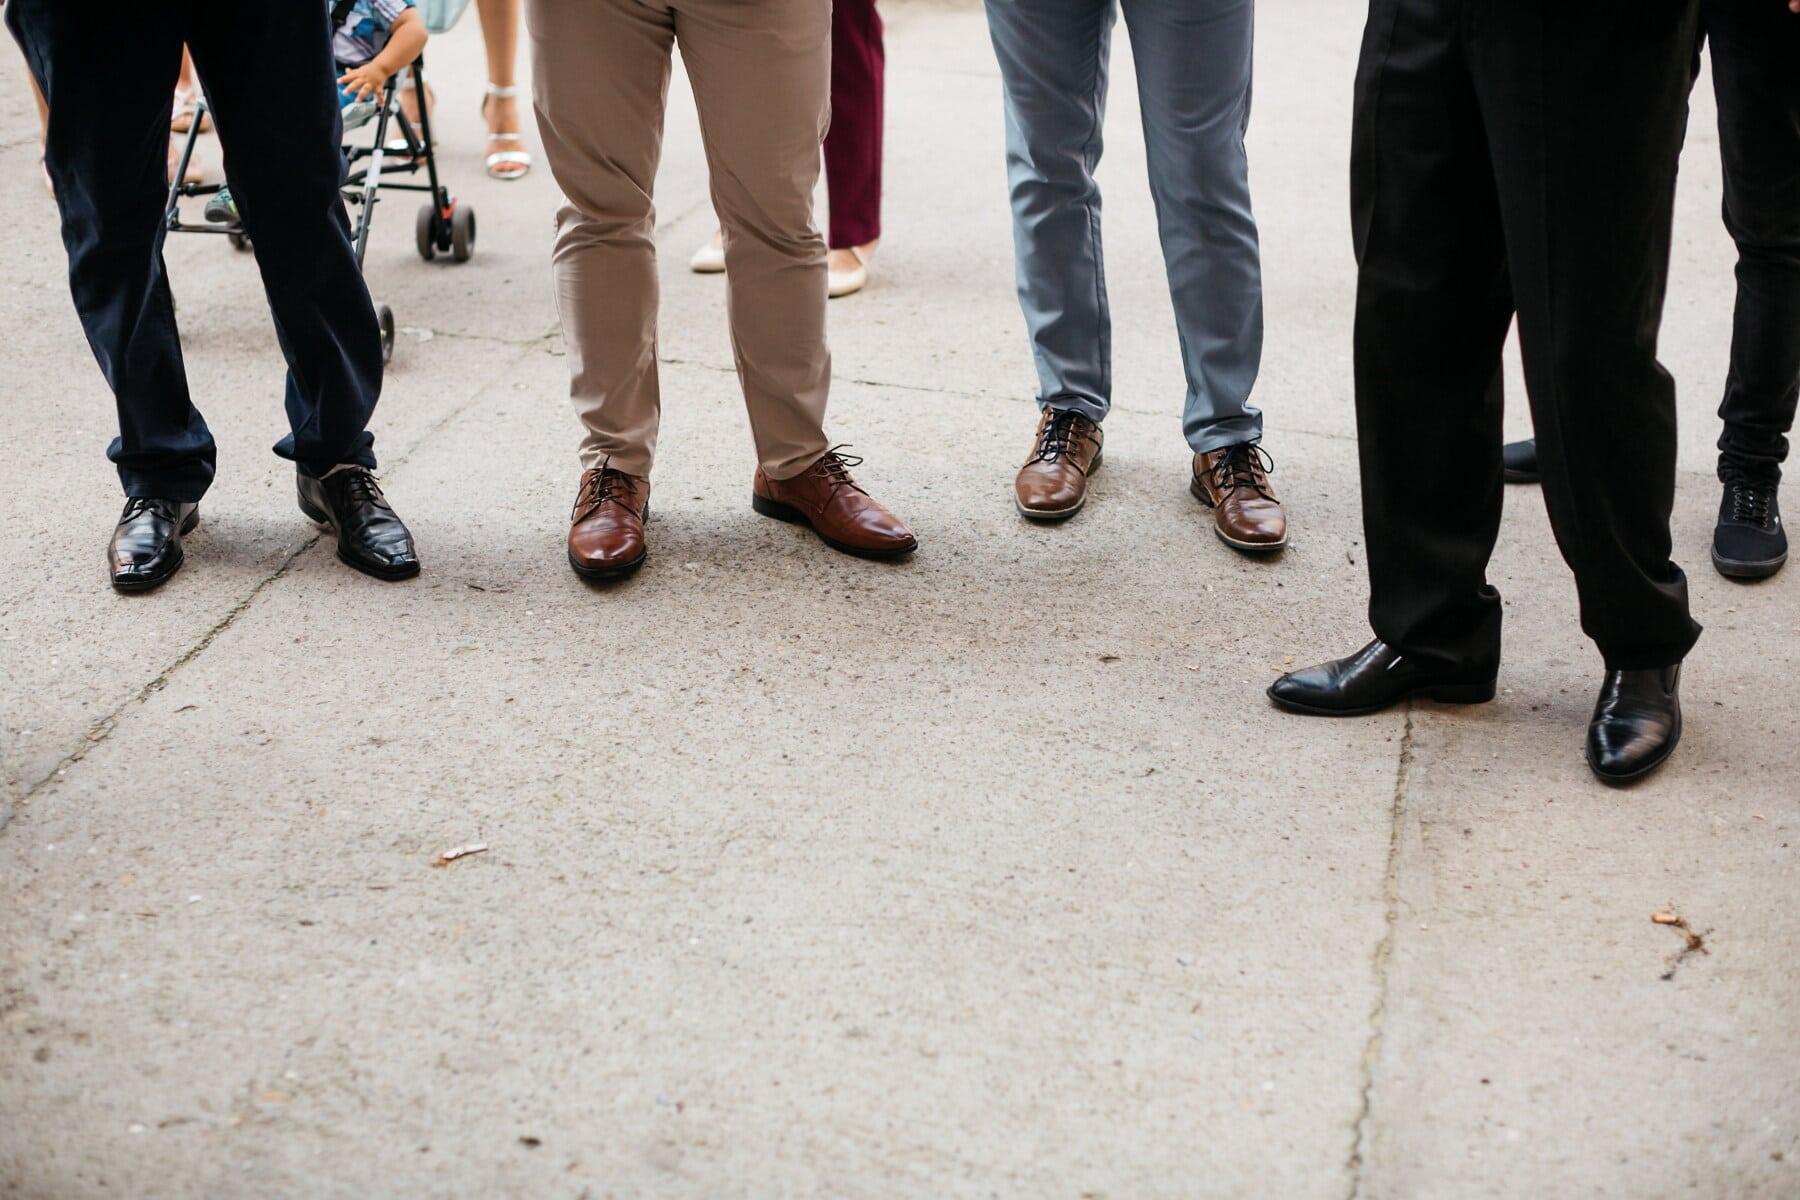 shoes, leather, pants, classic, legs, group, men, outfit, footwear, street